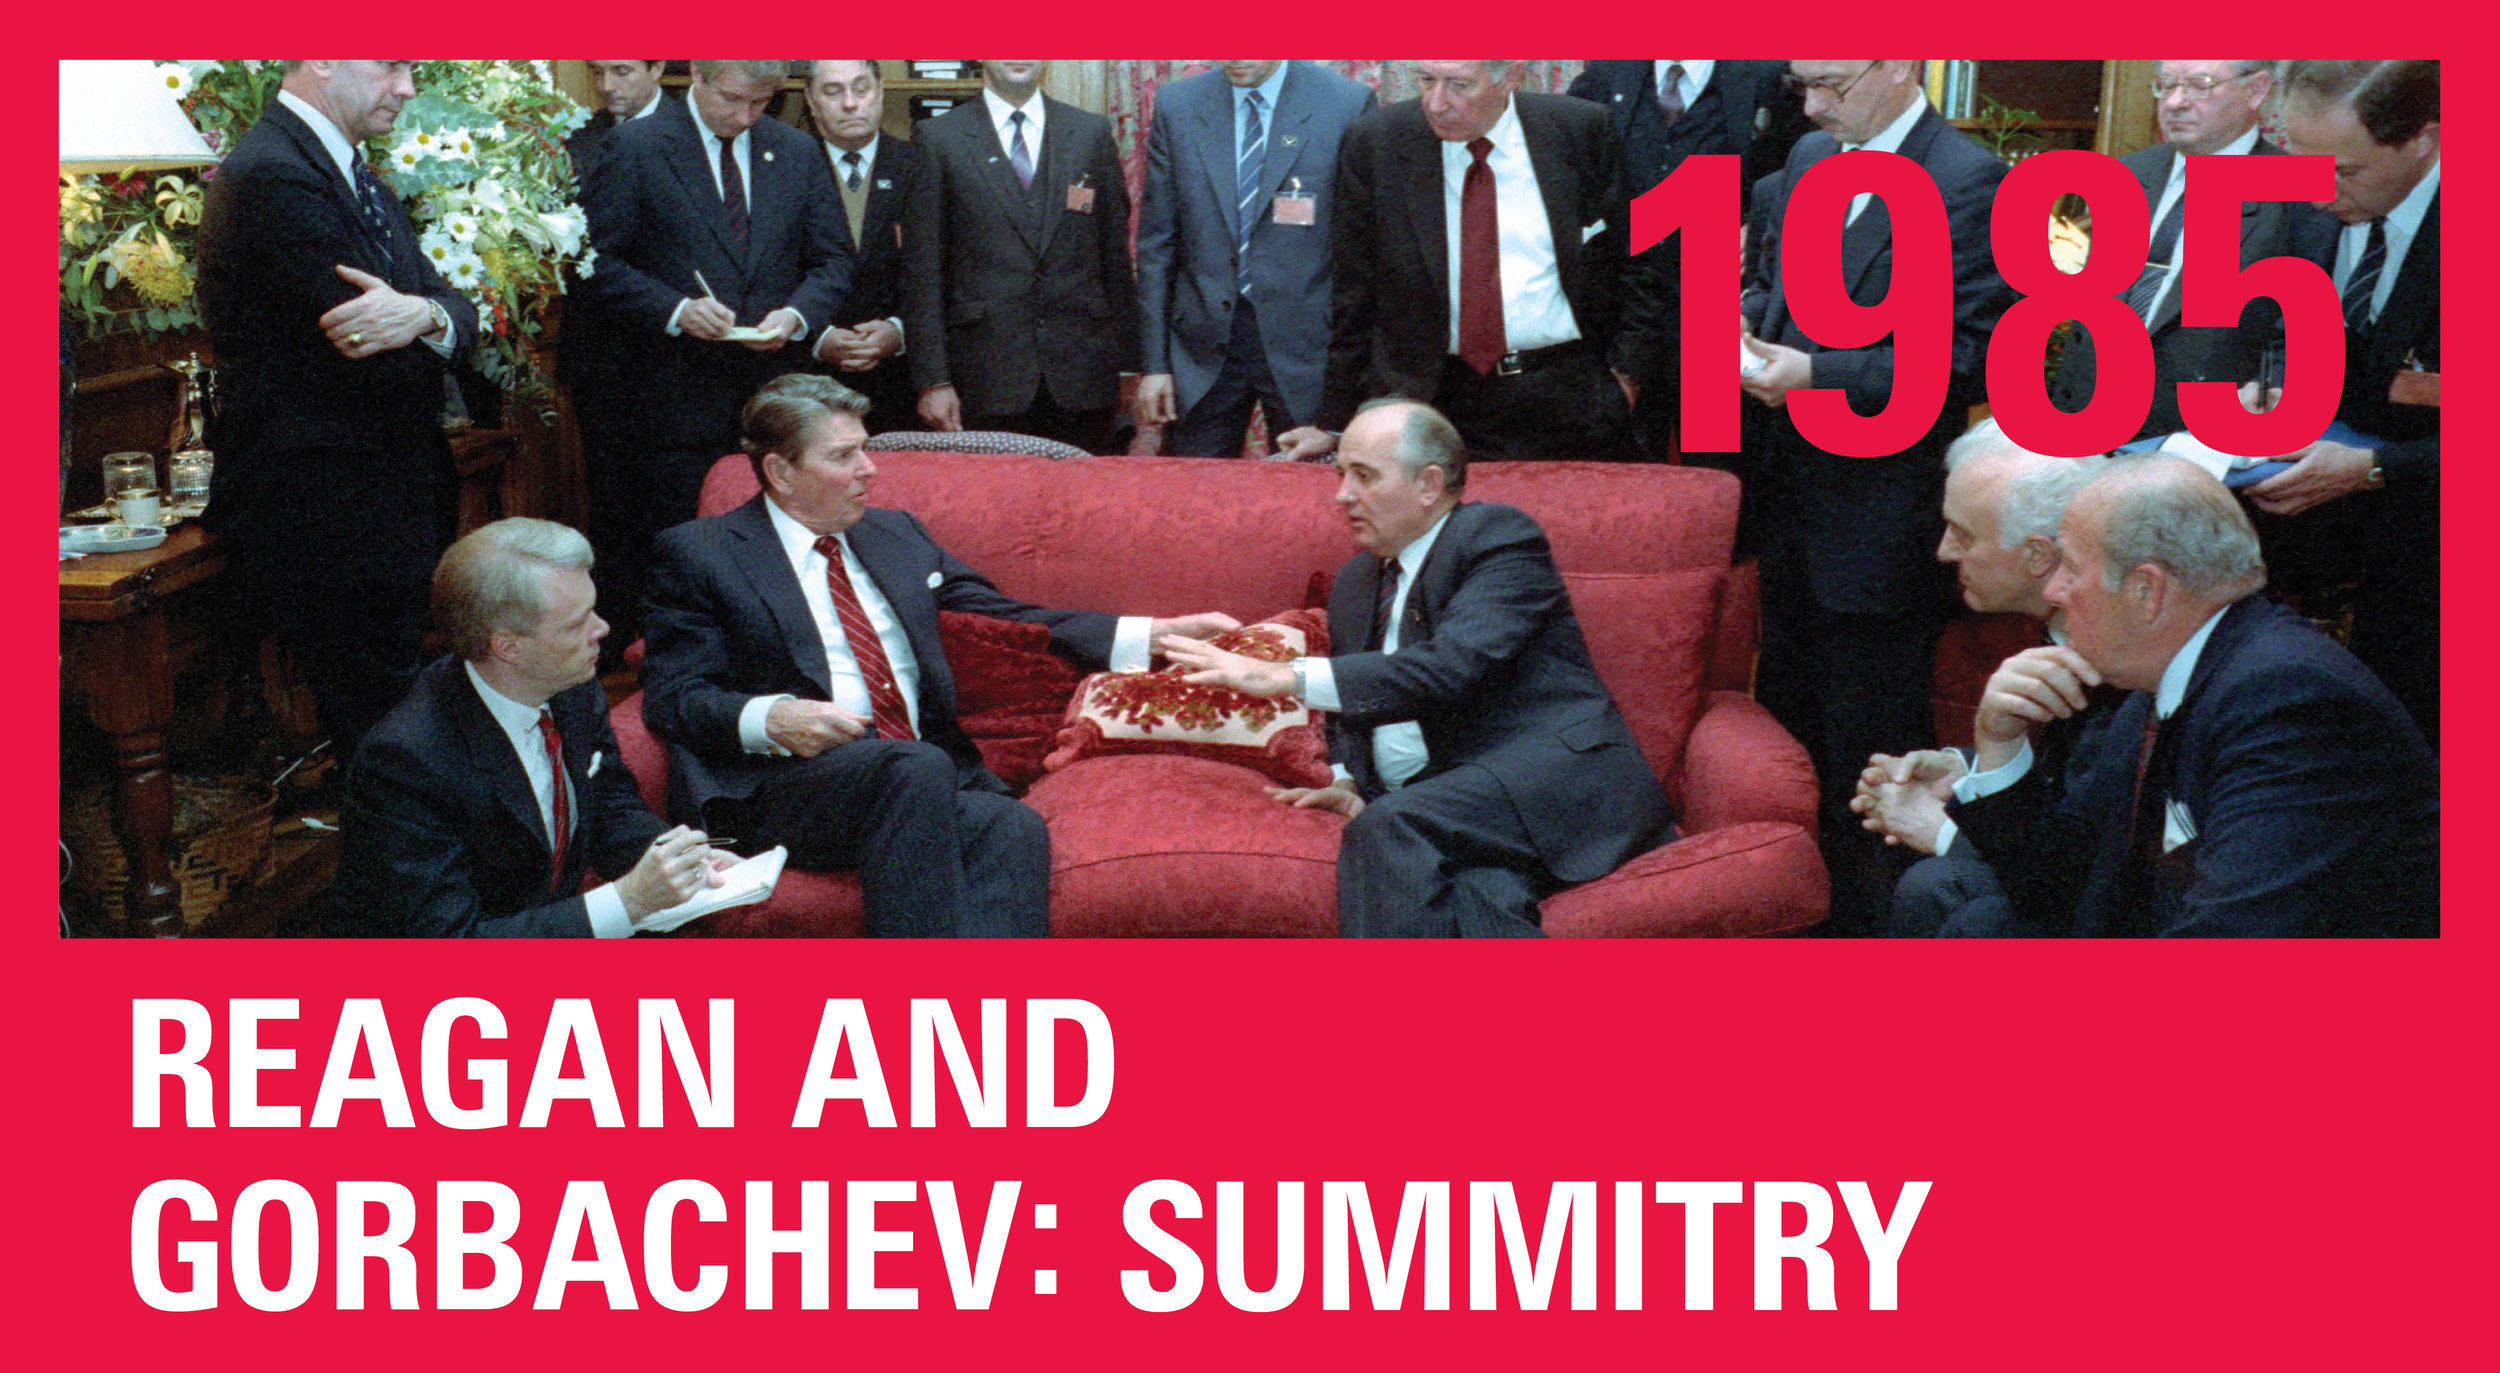 President Reagan meeting with Soviet General Secretary Gorbachev with their staffs at Maison de Saussure during the Geneva Summit on November 20, 1985.